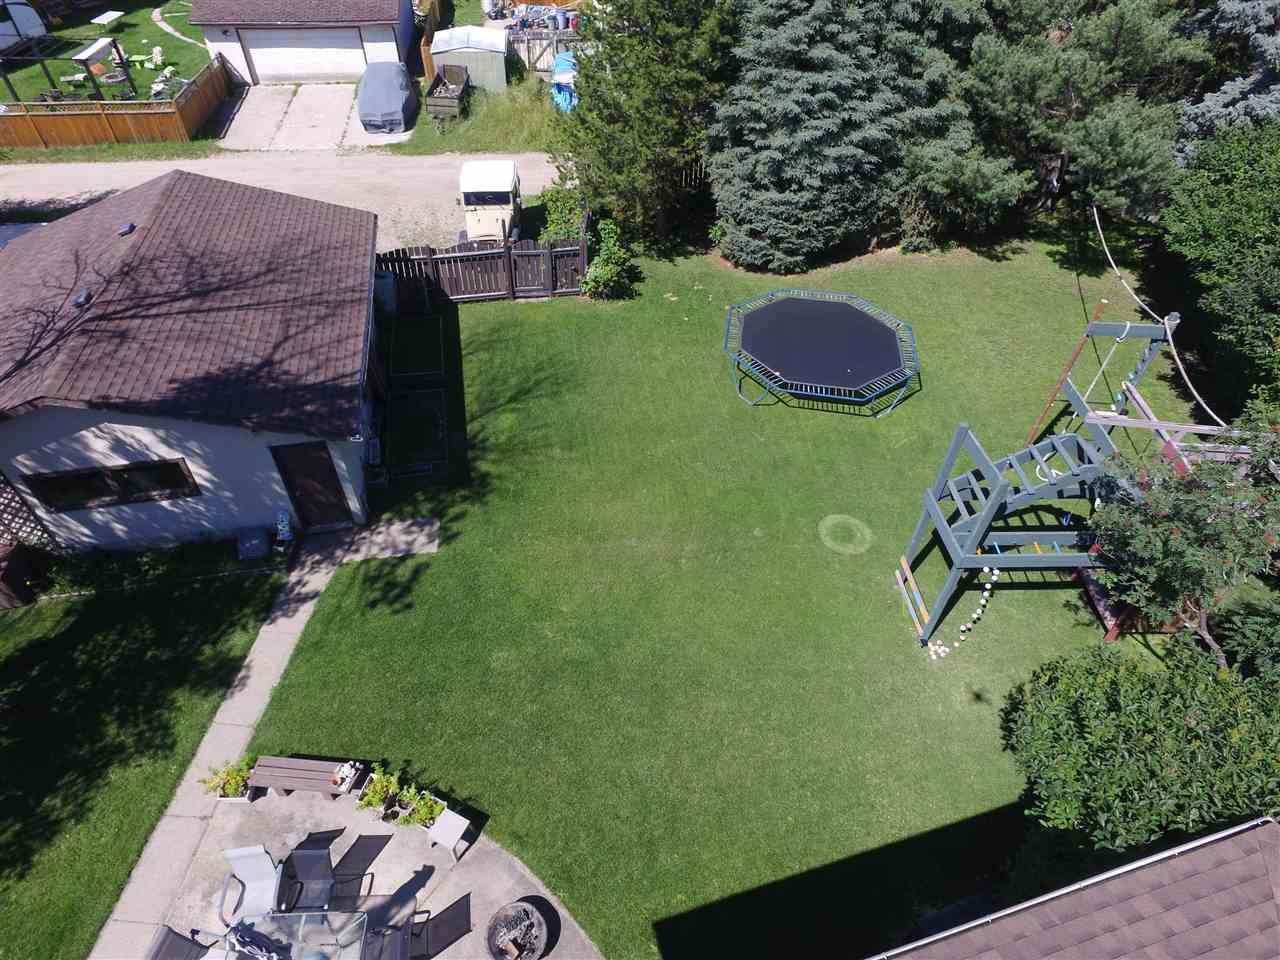 Photo 25: Photos: 125 Spruce Crescent: Wetaskiwin House for sale : MLS®# E4207728